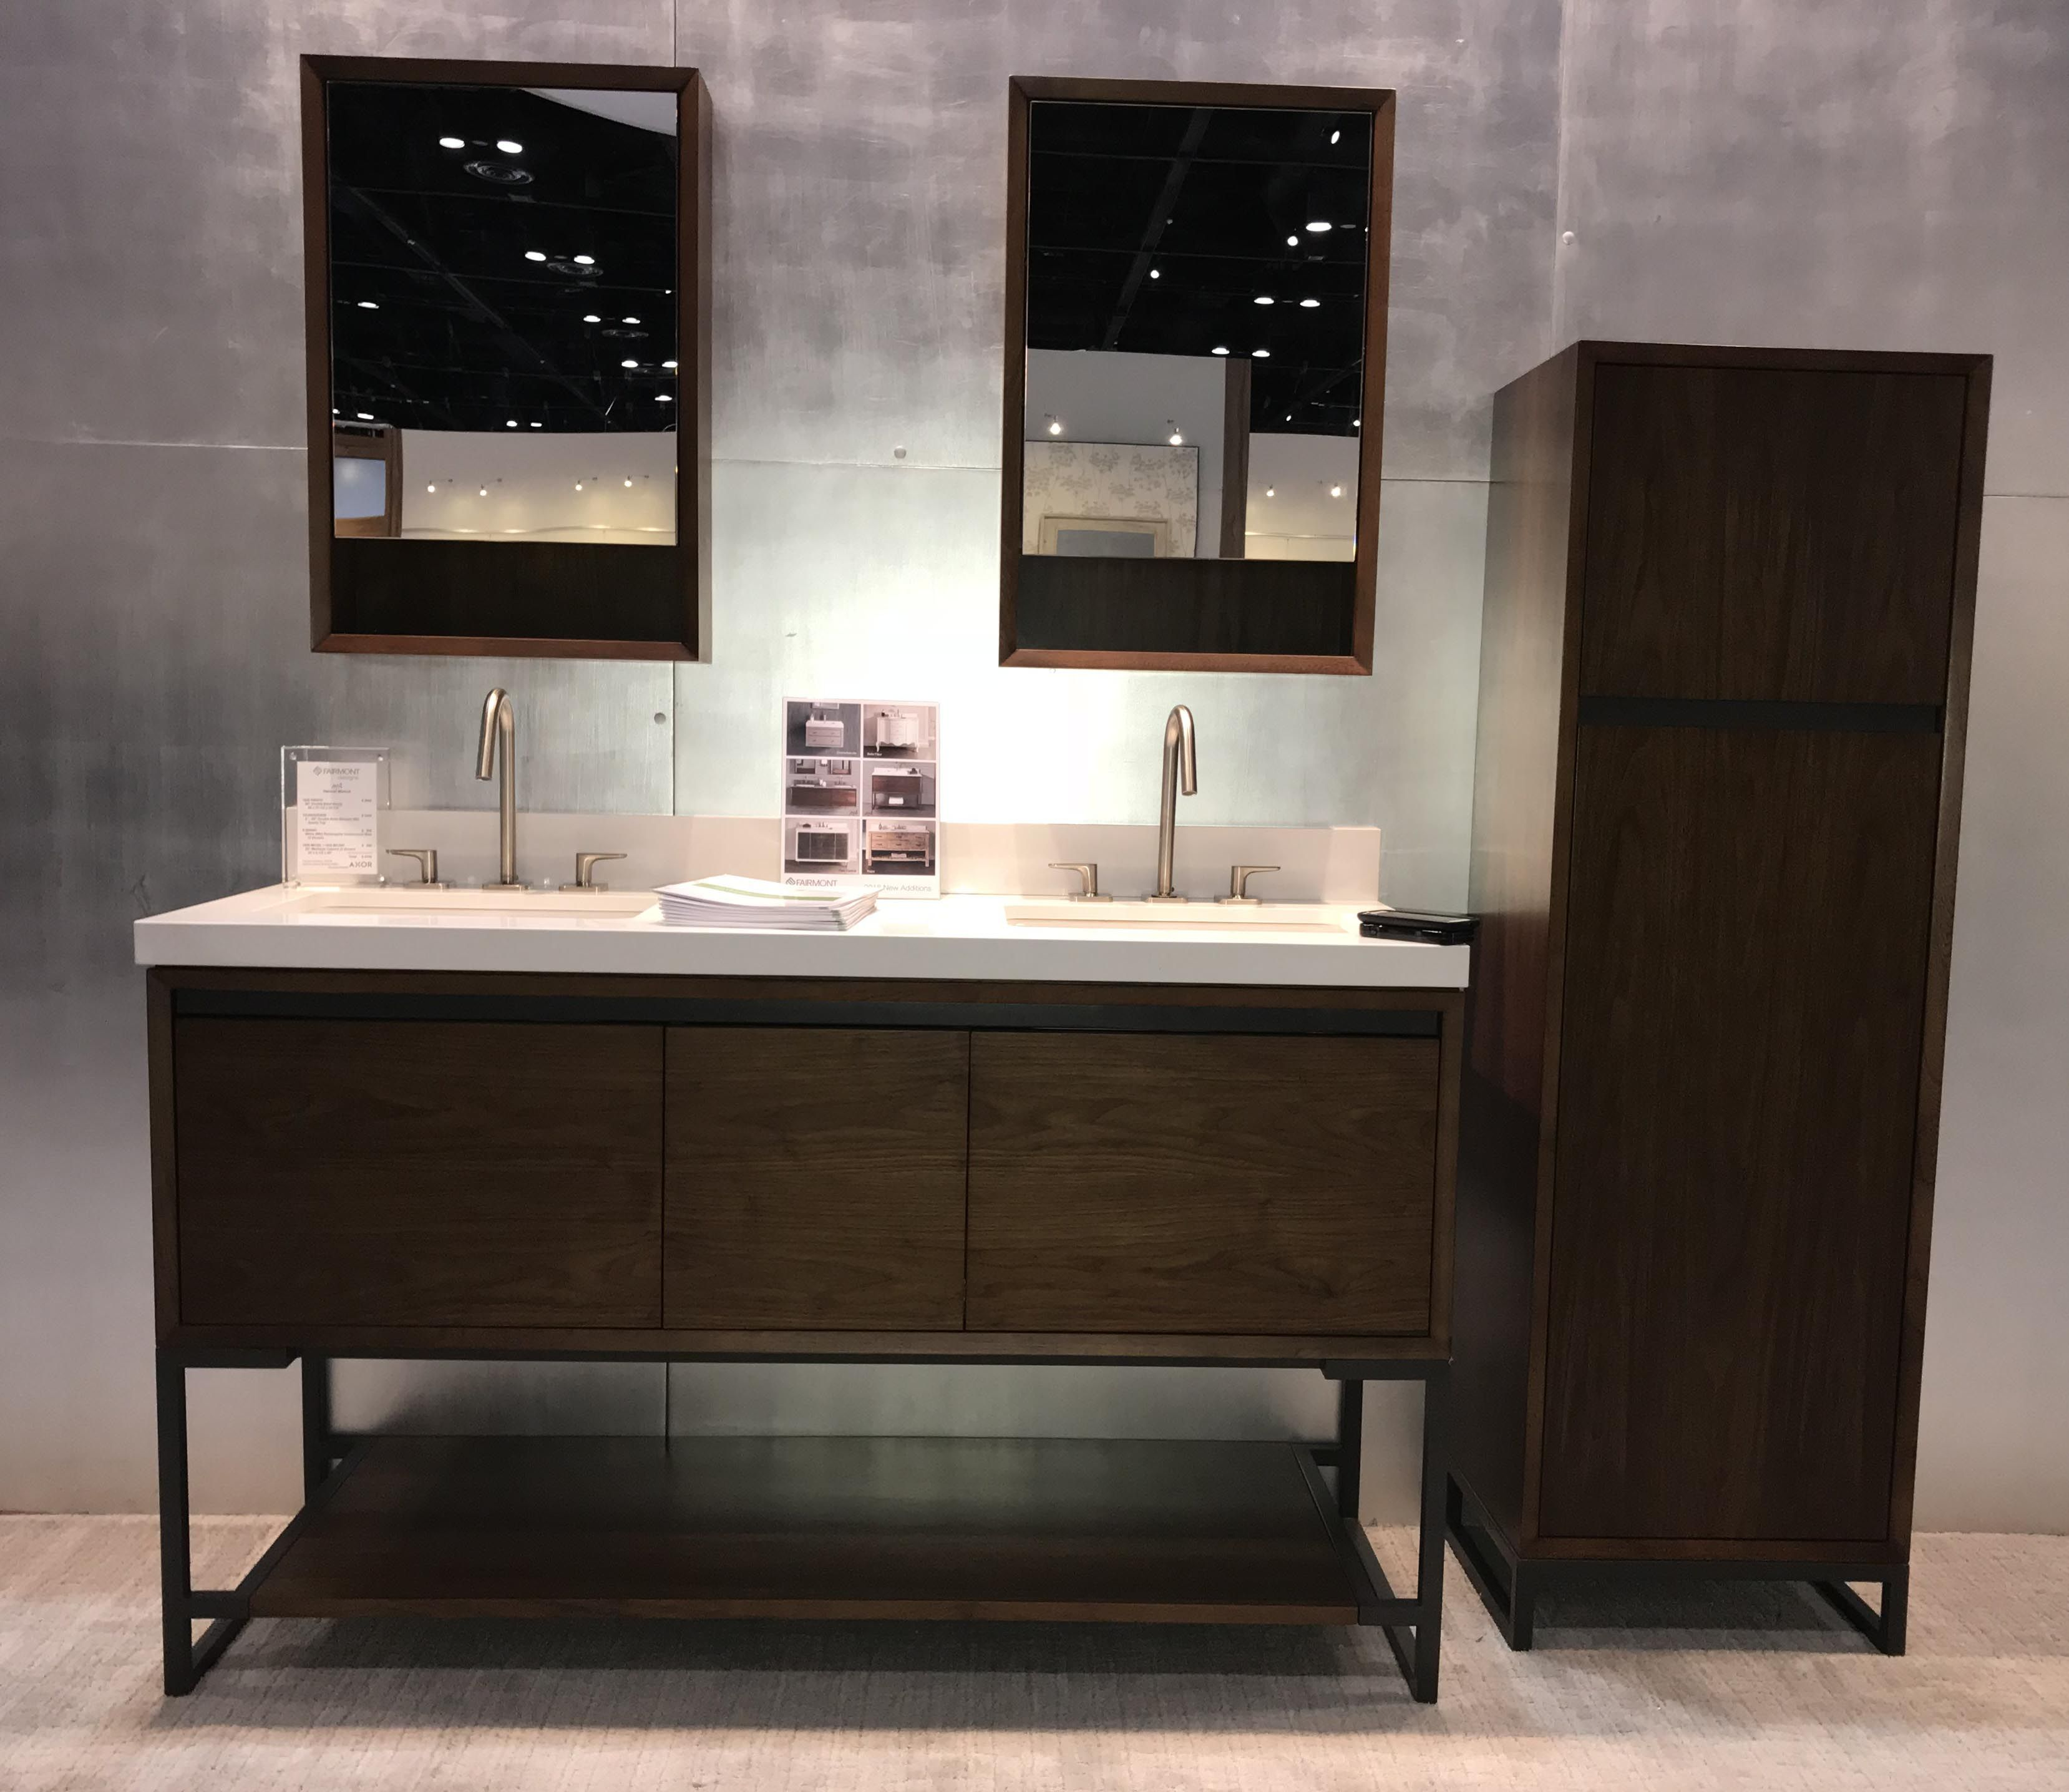 M4 60 Double Bowl Vanity With Storage Cabinet Fdbath Kbis2018